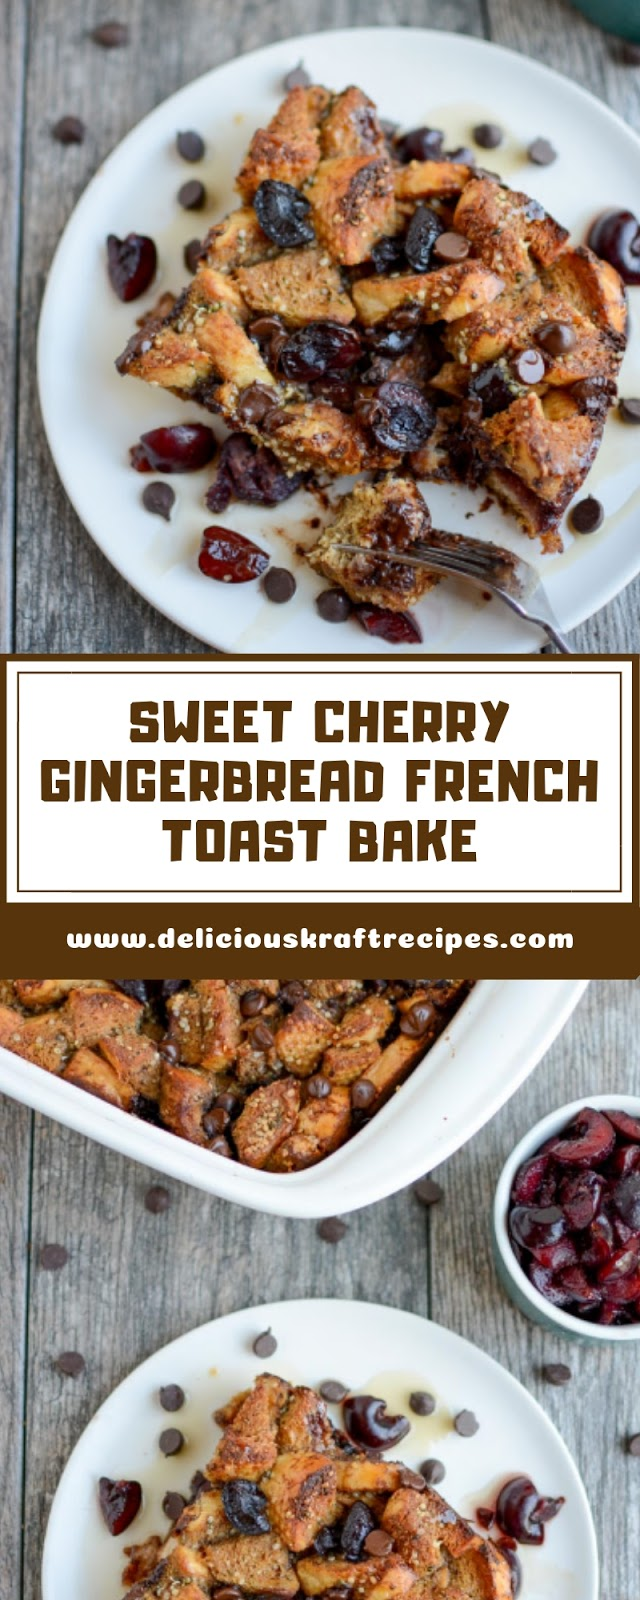 SWEET CHERRY GINGERBREAD FRENCH TOAST BAKE